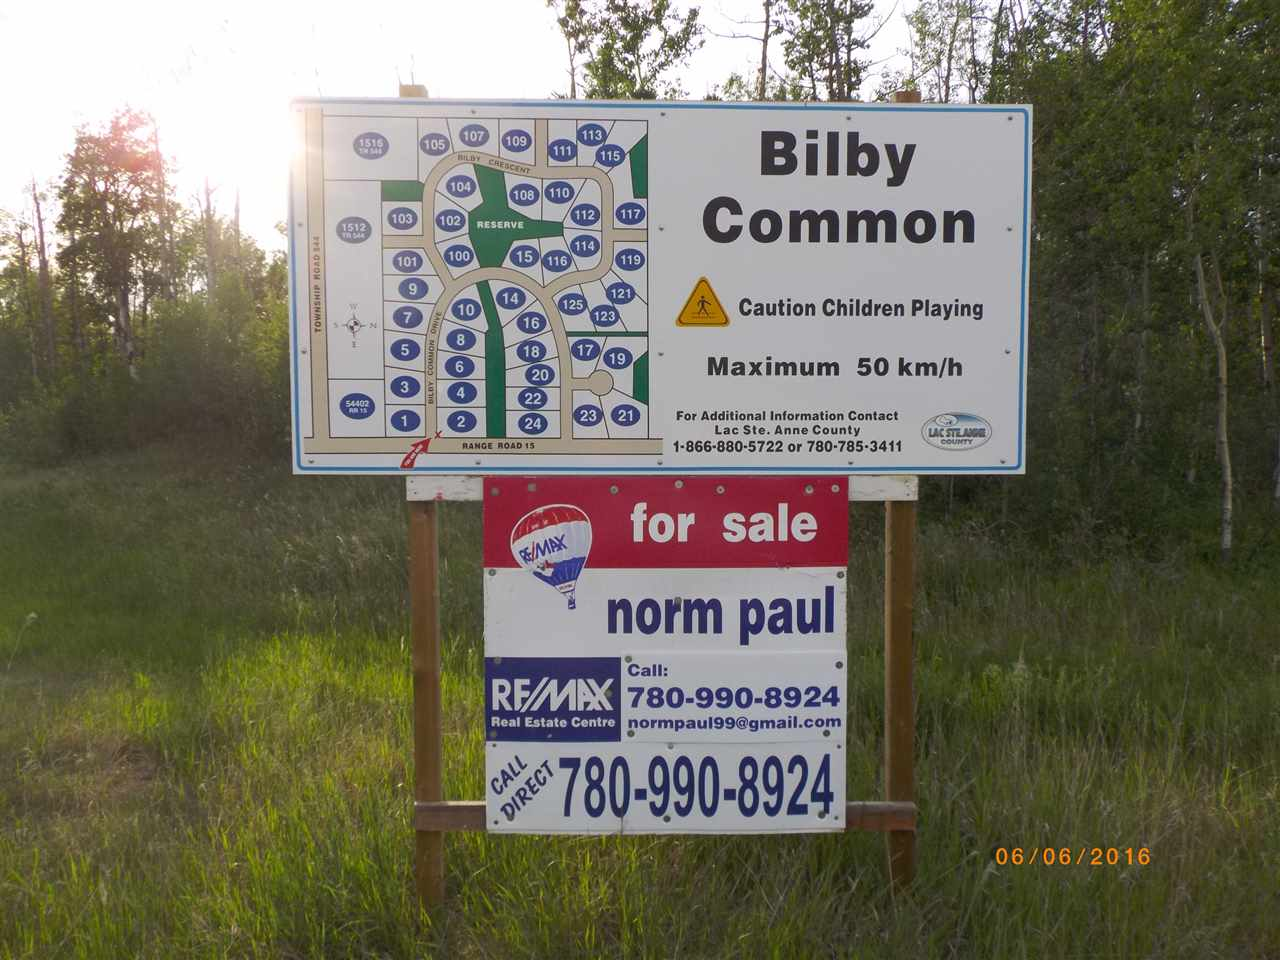 Easy 35 min from Edmonton city limits, 2 acre parcel partially backing environmental reserve,  slightly rolling land, gas & power to property line. New builds only, manufactured, modular or mobile must have concrete foundation, min house size 1200 sq ft, garages are mandatory & can be up to 30'x26'. Before you build call LAC ST ANNE COUNTY to check the Country Residential Land Use Guidelines. BILBY NATURAL AREA is 1 mi north, DEVILS LAKE is 10 min north, ONOWAY is 8 km NW, ONOWAY TO ALBERTA BEACH is 15 min. Take a look soon. BUY NOW - BUILD LATER. Make your move now. Only 3 lots left at these prices. On the subdivision map this is lot 110, LEGAL DESCRIPTION is Lot 5, Block 2, Plan 1123418.